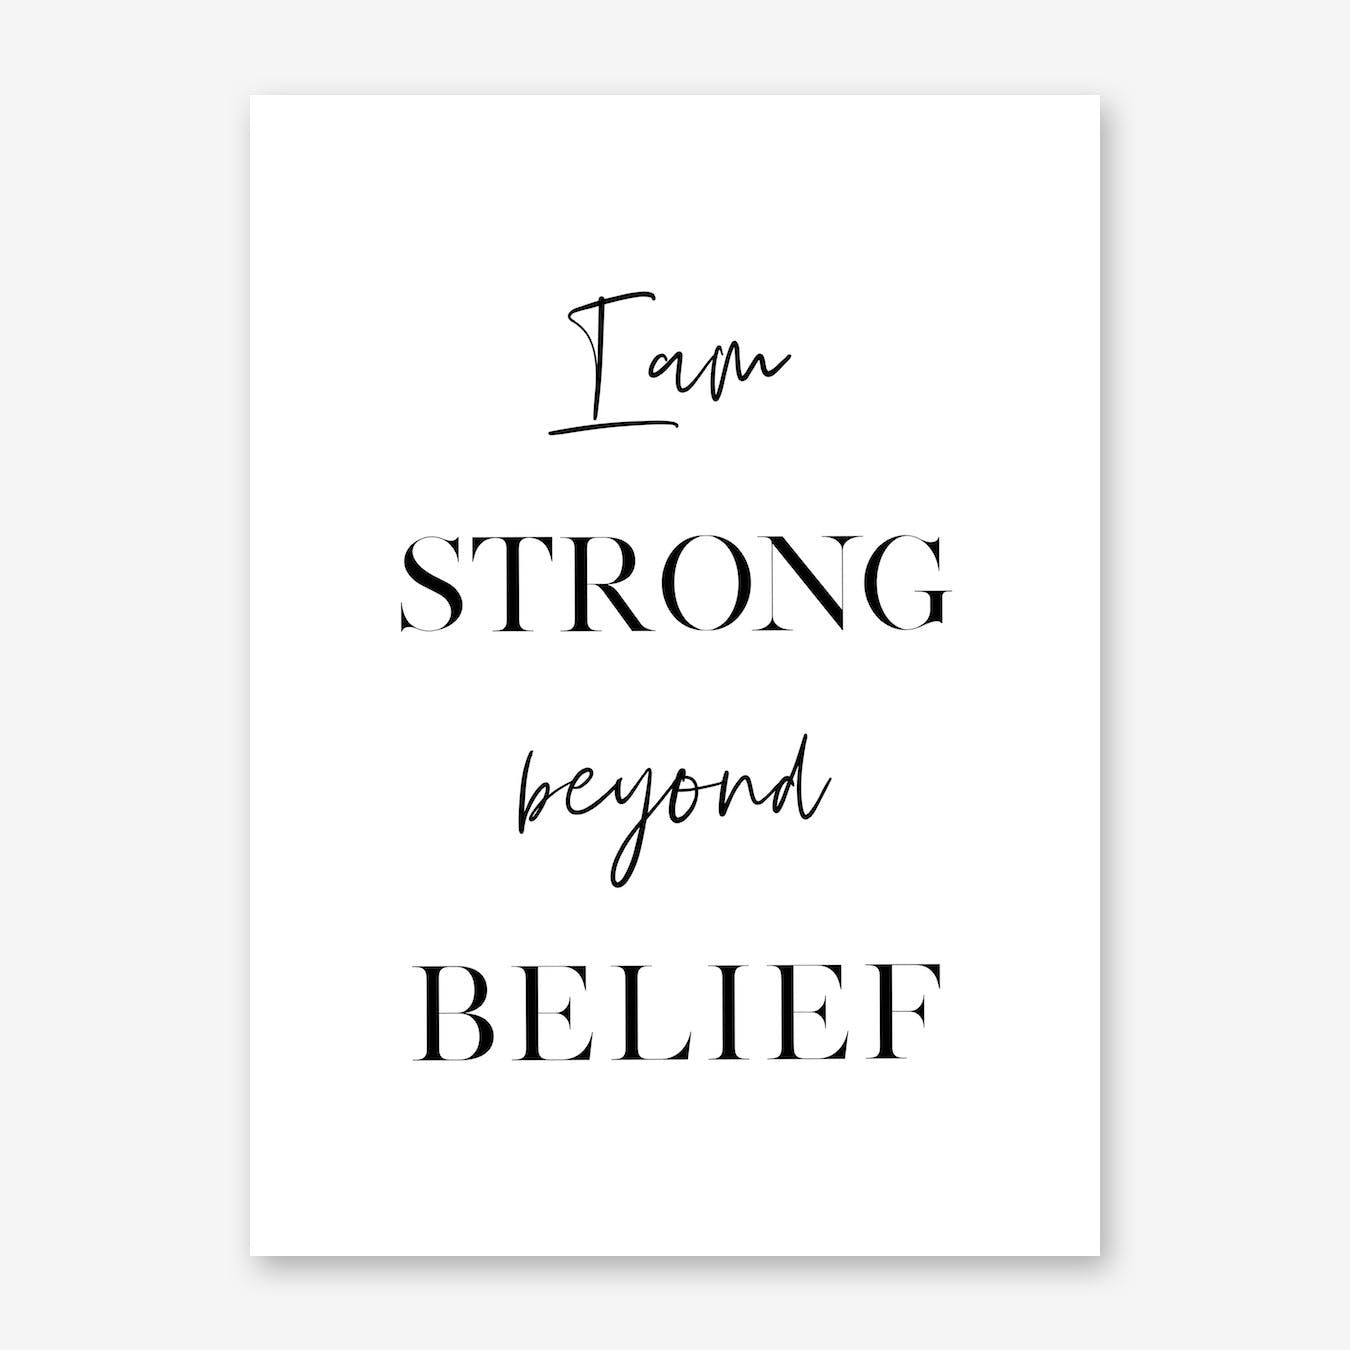 I am Strong beyond Belief